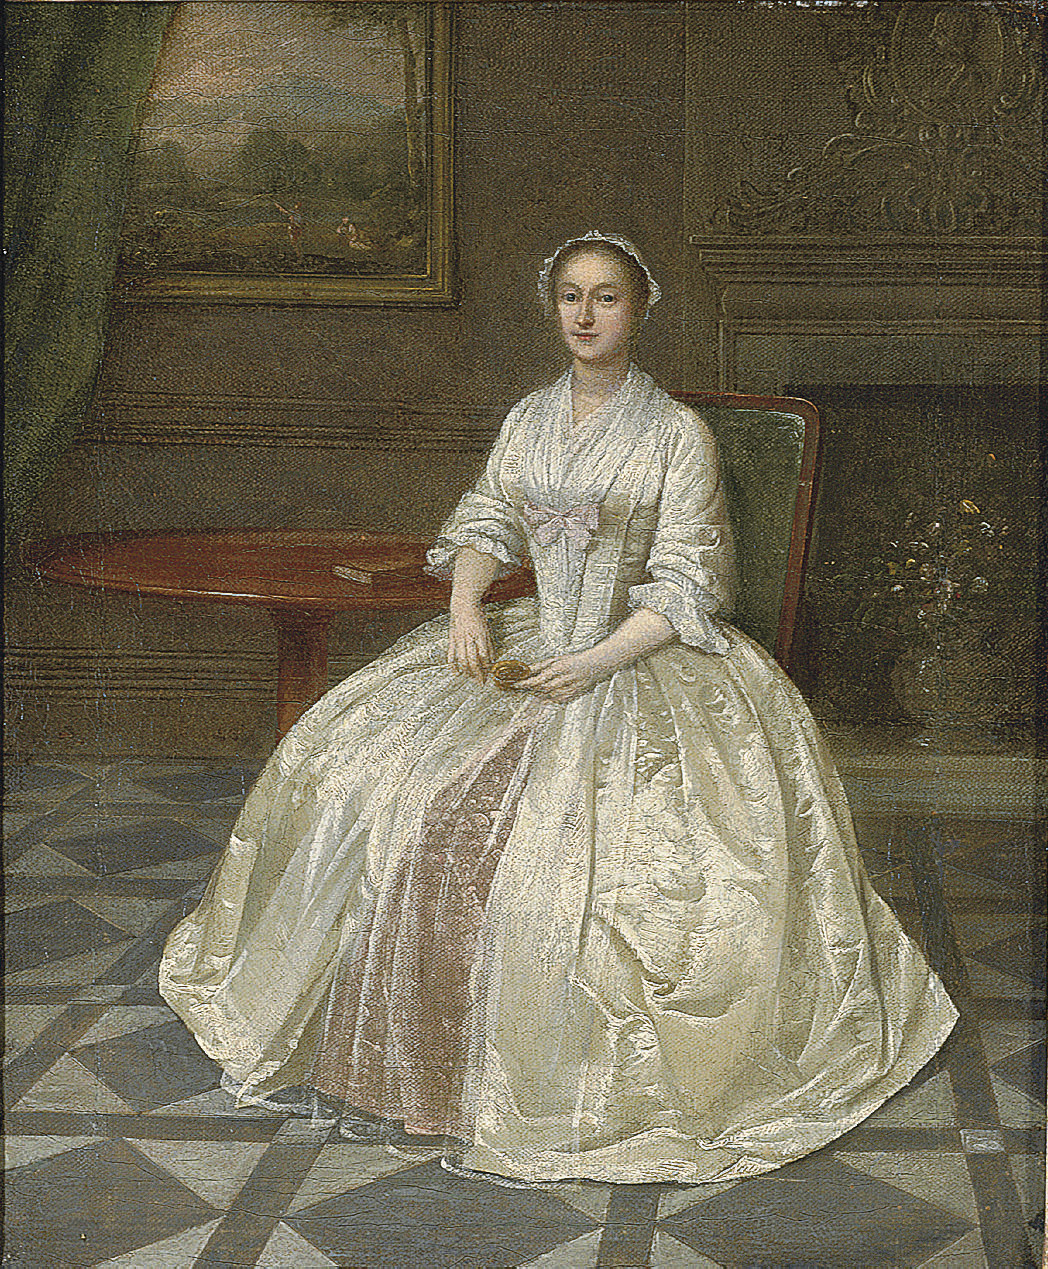 Portrait of a lady, small full-length, in a white dress with pink underskirt, seated beside a mahogany tripod table, a fireplace with a stucco overmantel beyond